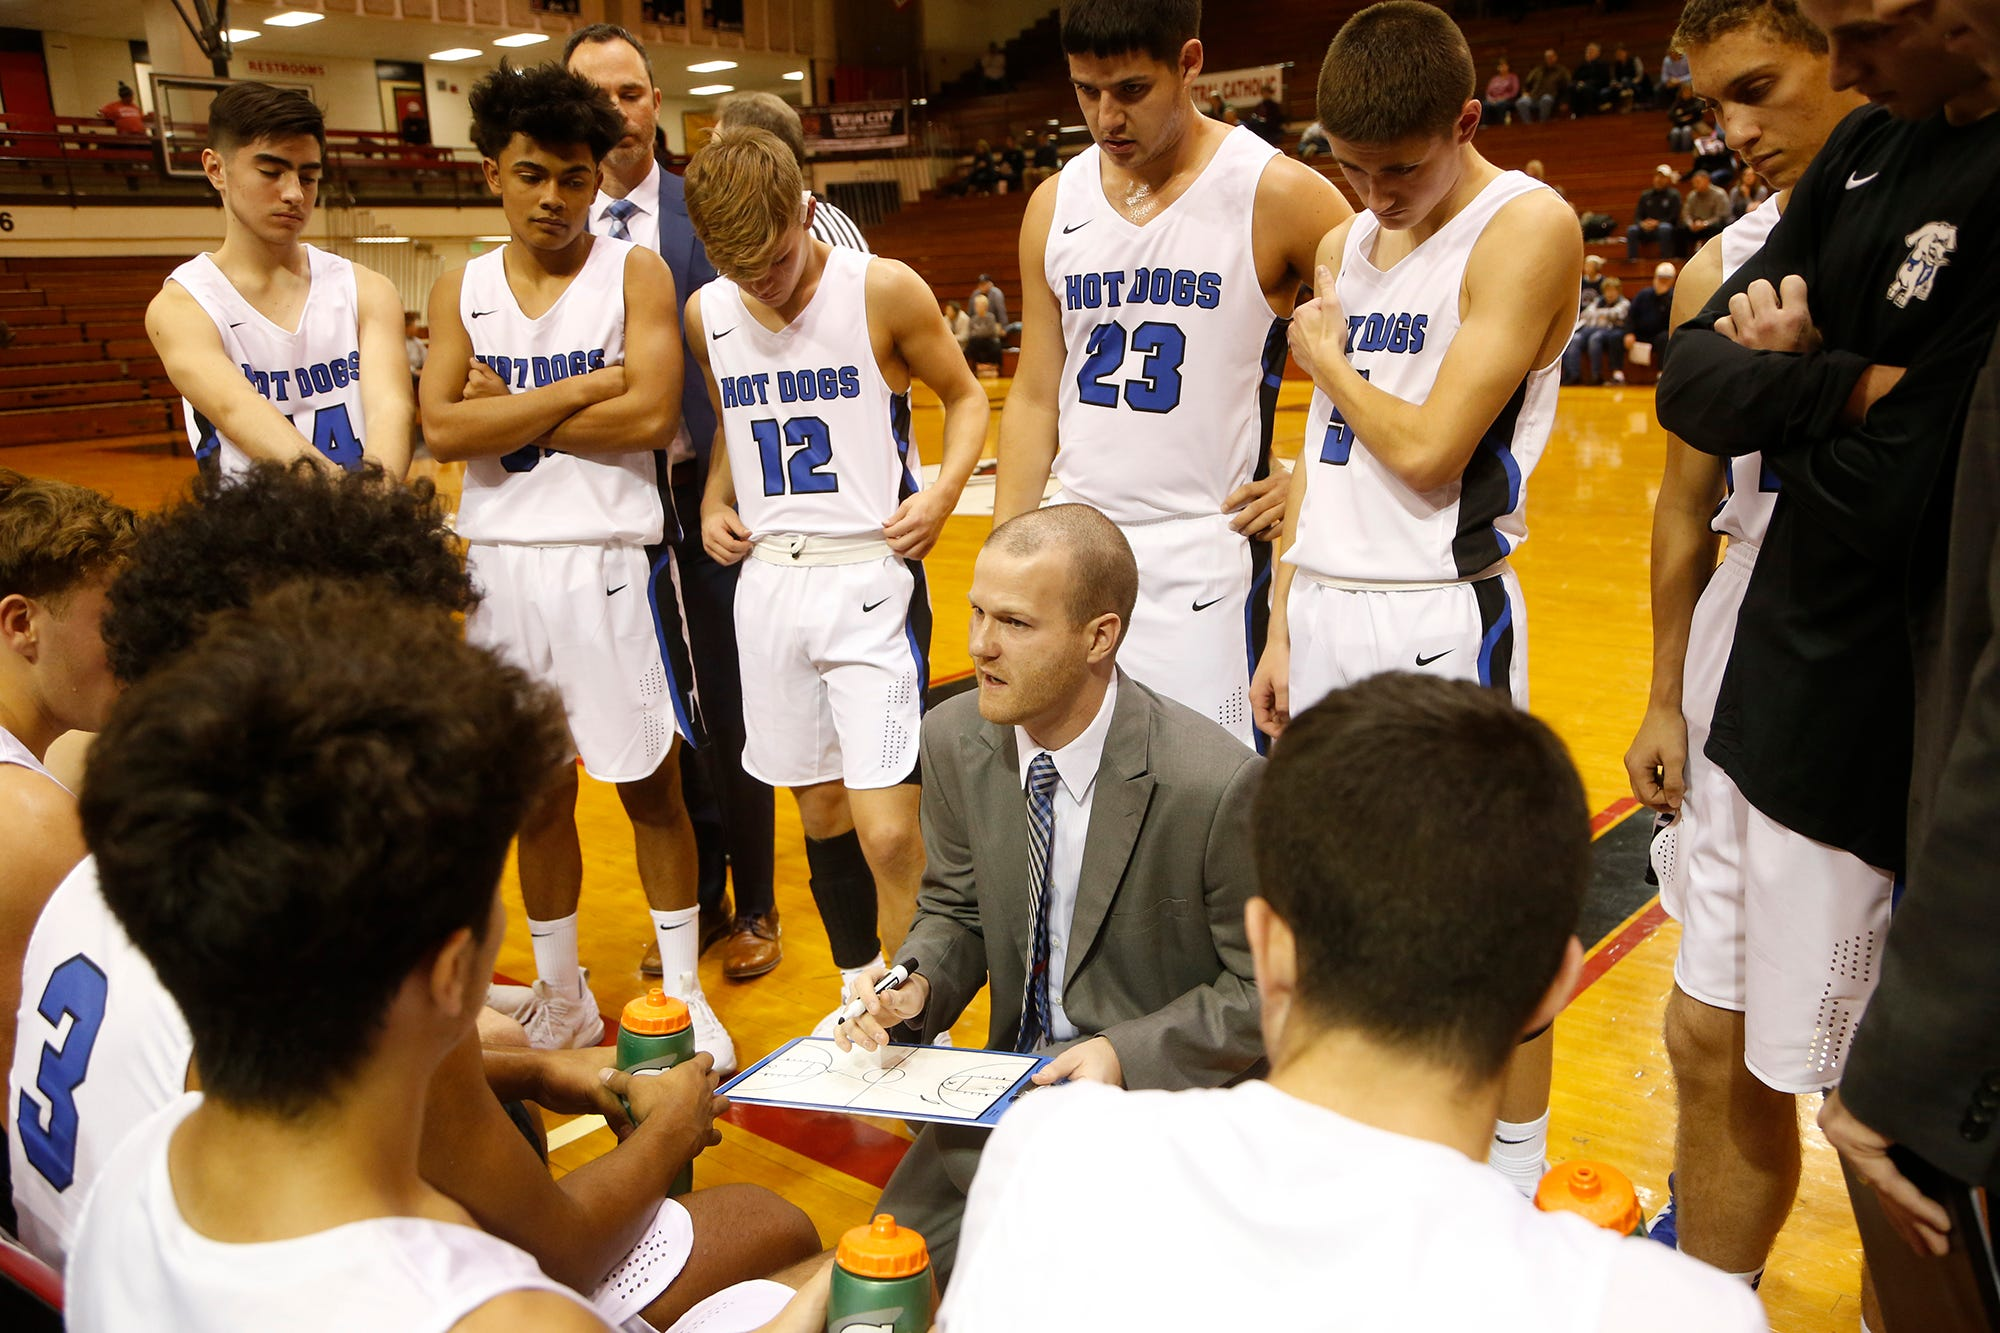 Frankfort head coach Nate VanDuyne with instructions for the Hot Dogs as they face Central Catholic in the Franciscan Health Hoops Classic Tuesday, November 27, 2018, at Lafayette Jeff. CC defeated Frankfort 70-40.